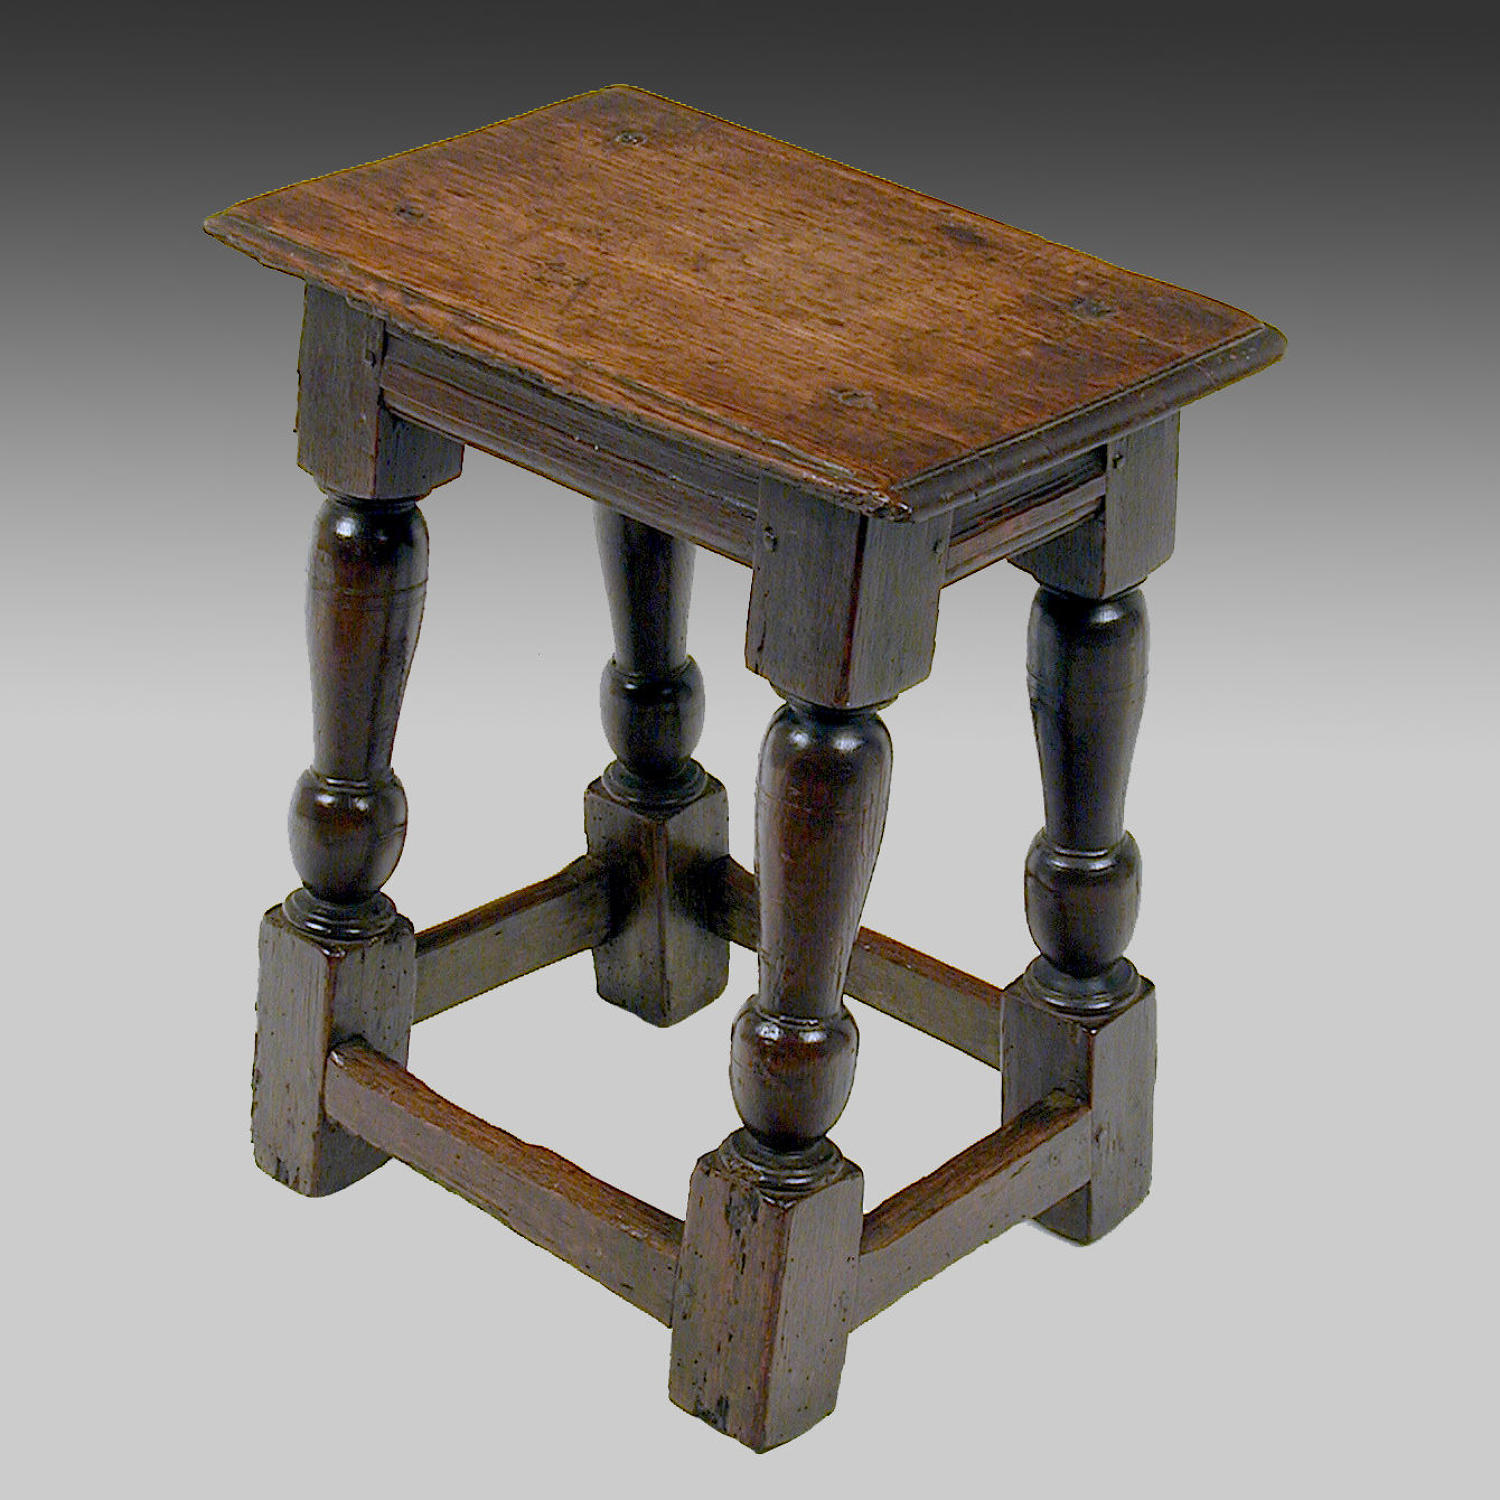 Early 17th century oak joined stool